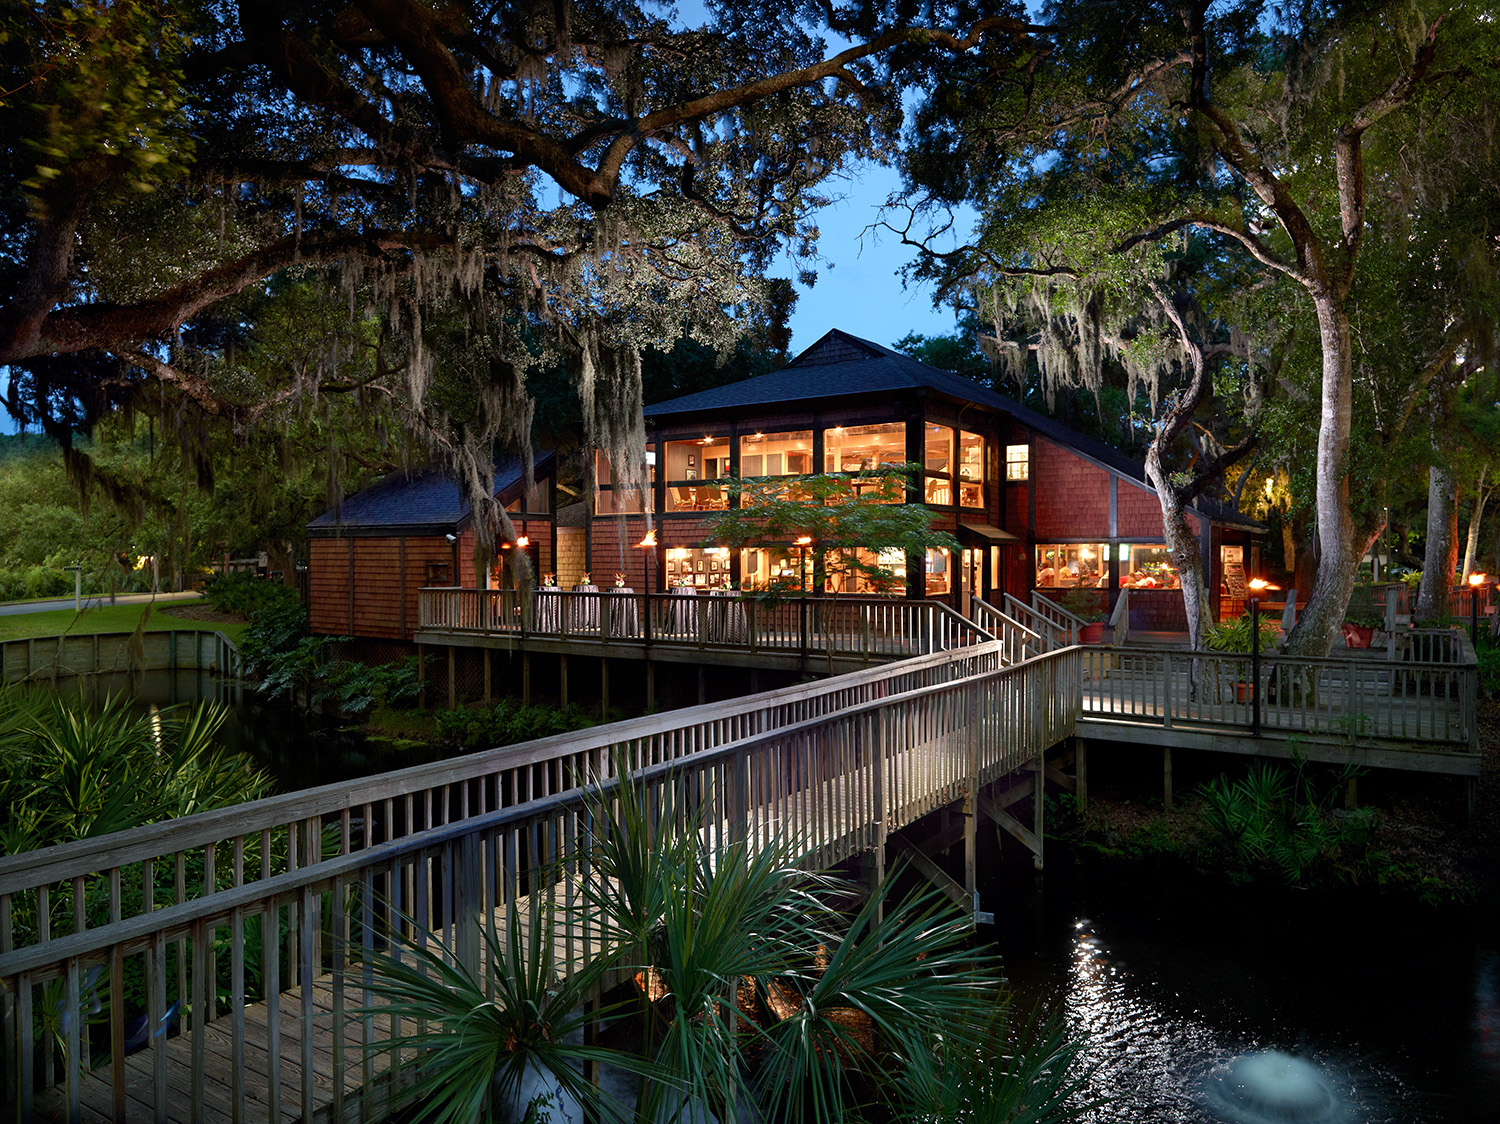 Falcon s Nest   Villas of Amelia Island Fernandina Beach Dining Stop in after work or a long day of Amelia Island resort activities and  check out this restaurant family friendly pub that pays homage to civil and  military